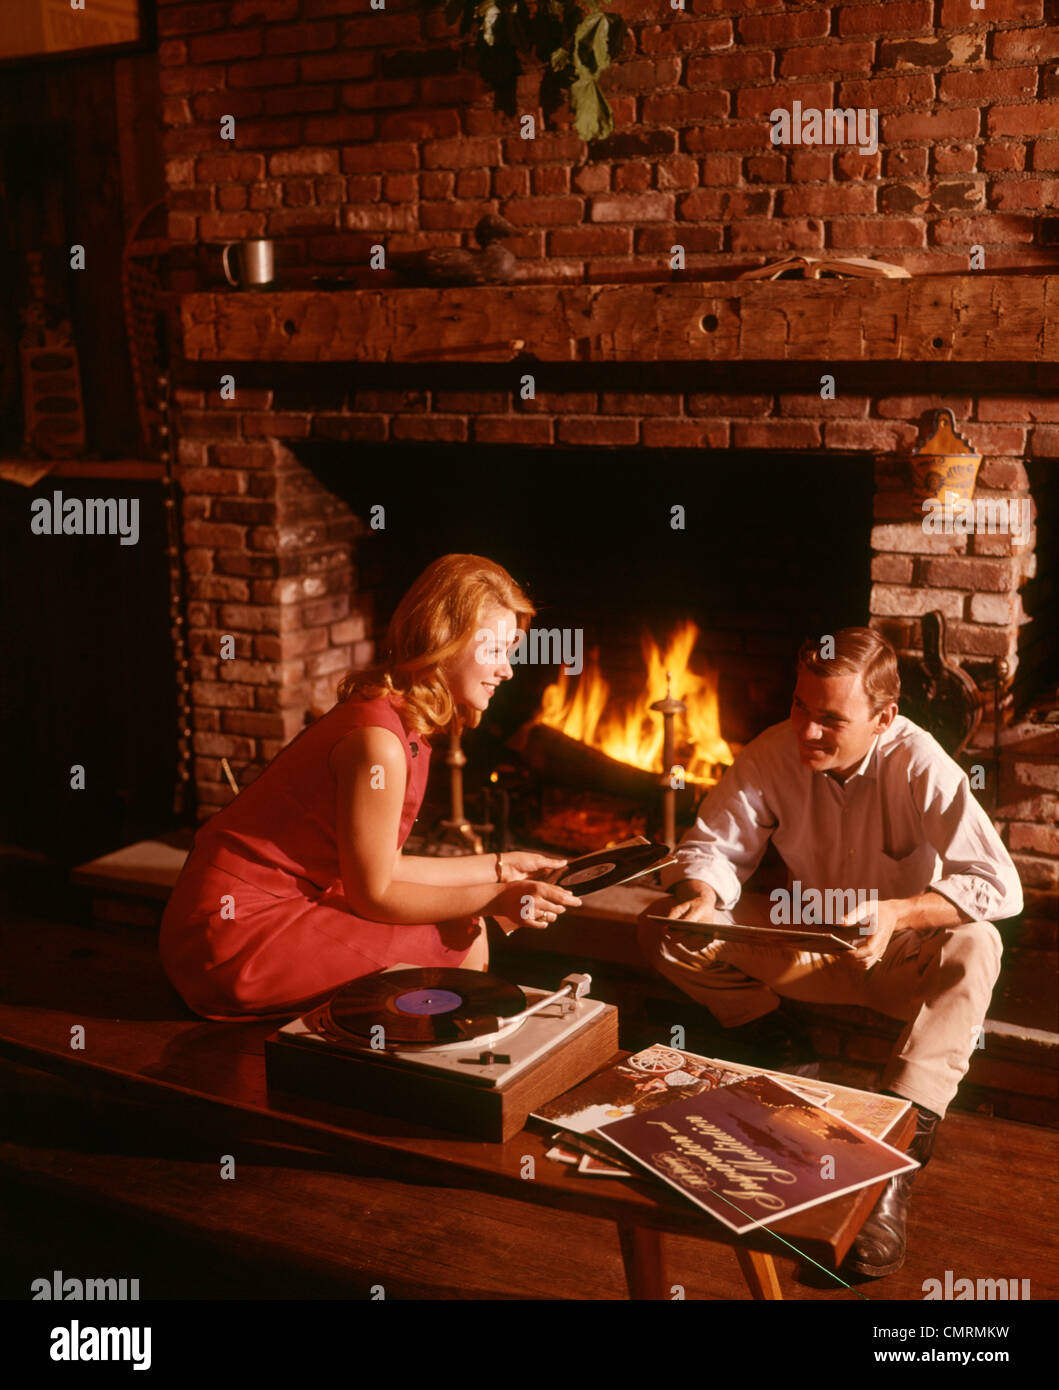 1960 1960s 1970 1970s COUPLE MAN WOMAN LIVING ROOM FIREPLACE RECORD